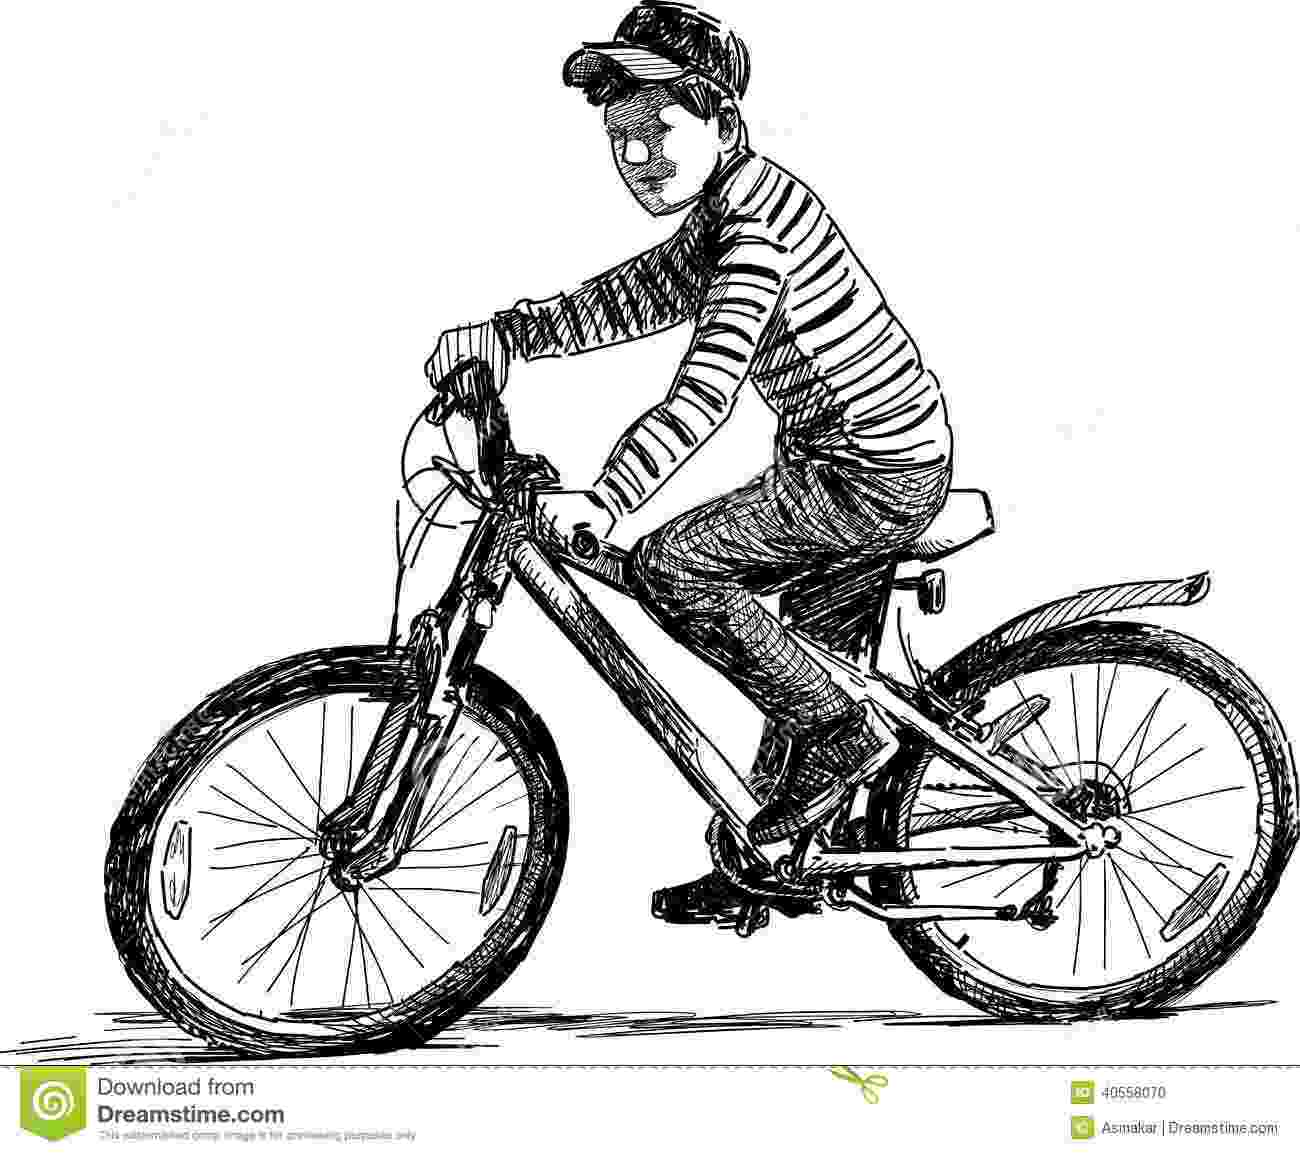 cycle sketch little boy on a bicycle stock vector illustration of sketch cycle